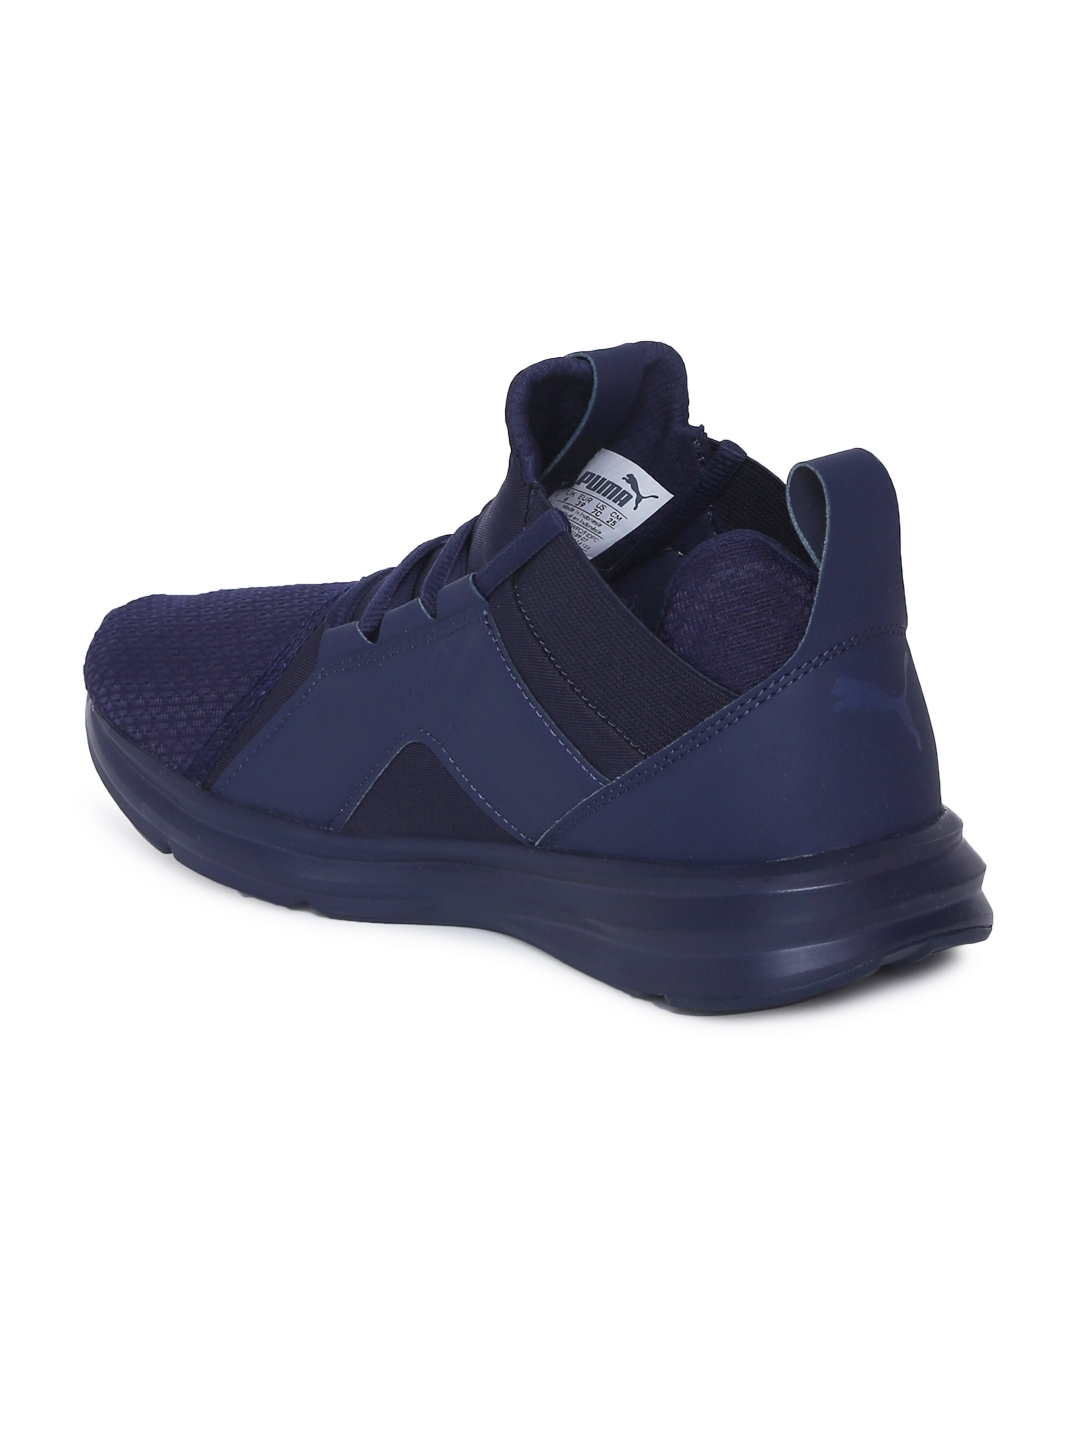 0a1b7543fa4 Buy Puma Kids Navy Blue Enzo Jr Sneakers - Casual Shoes for Unisex ...